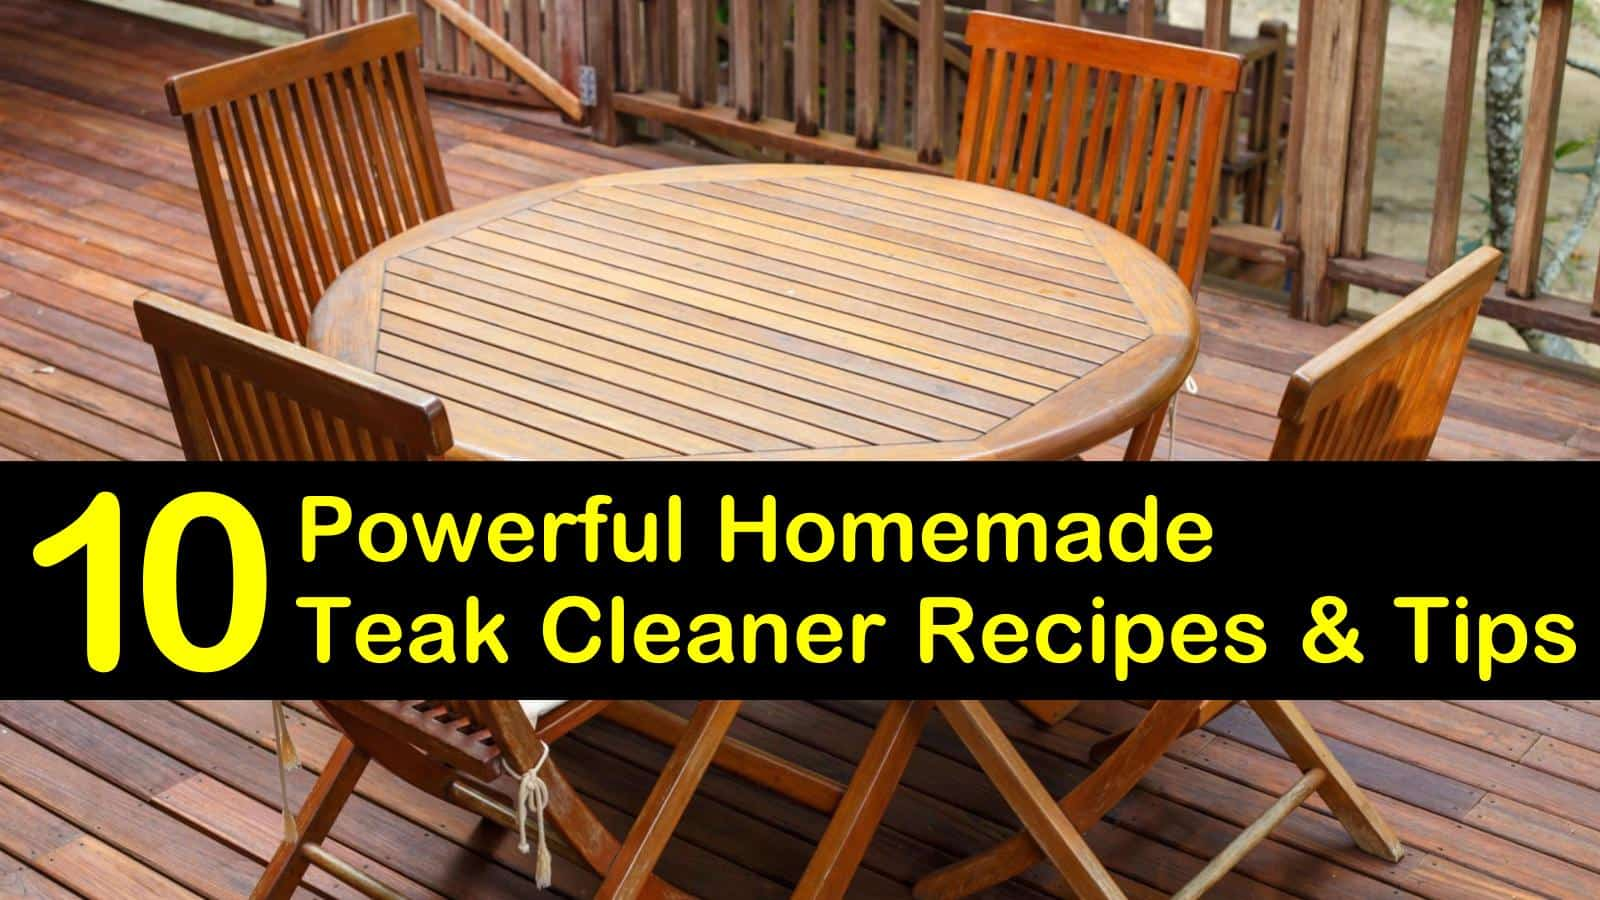 homemade teak cleaner titleimg1